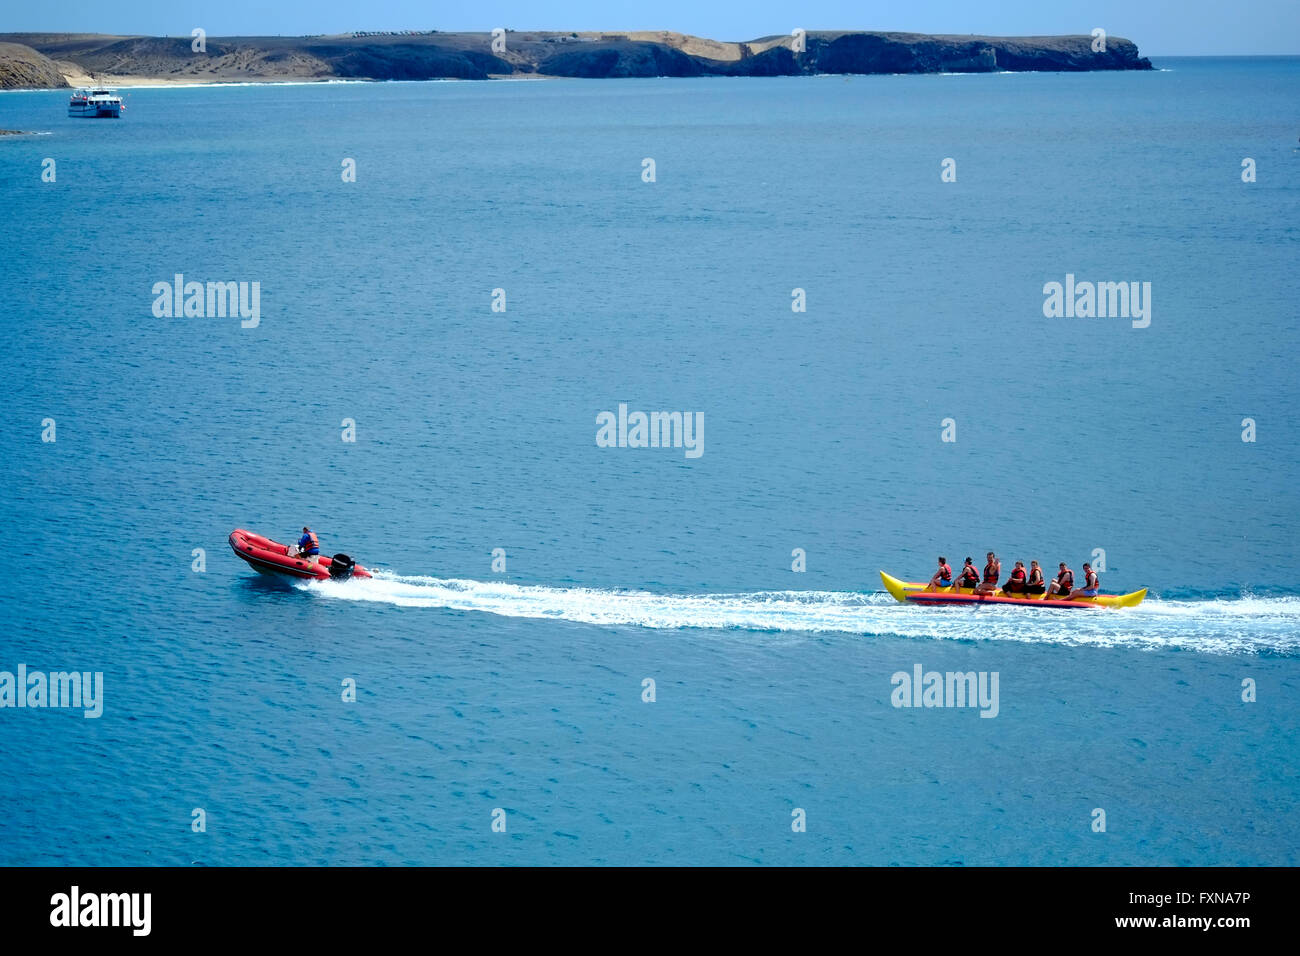 Holidaymakers enjoying a ride on a banana boat on the sea - Stock Image